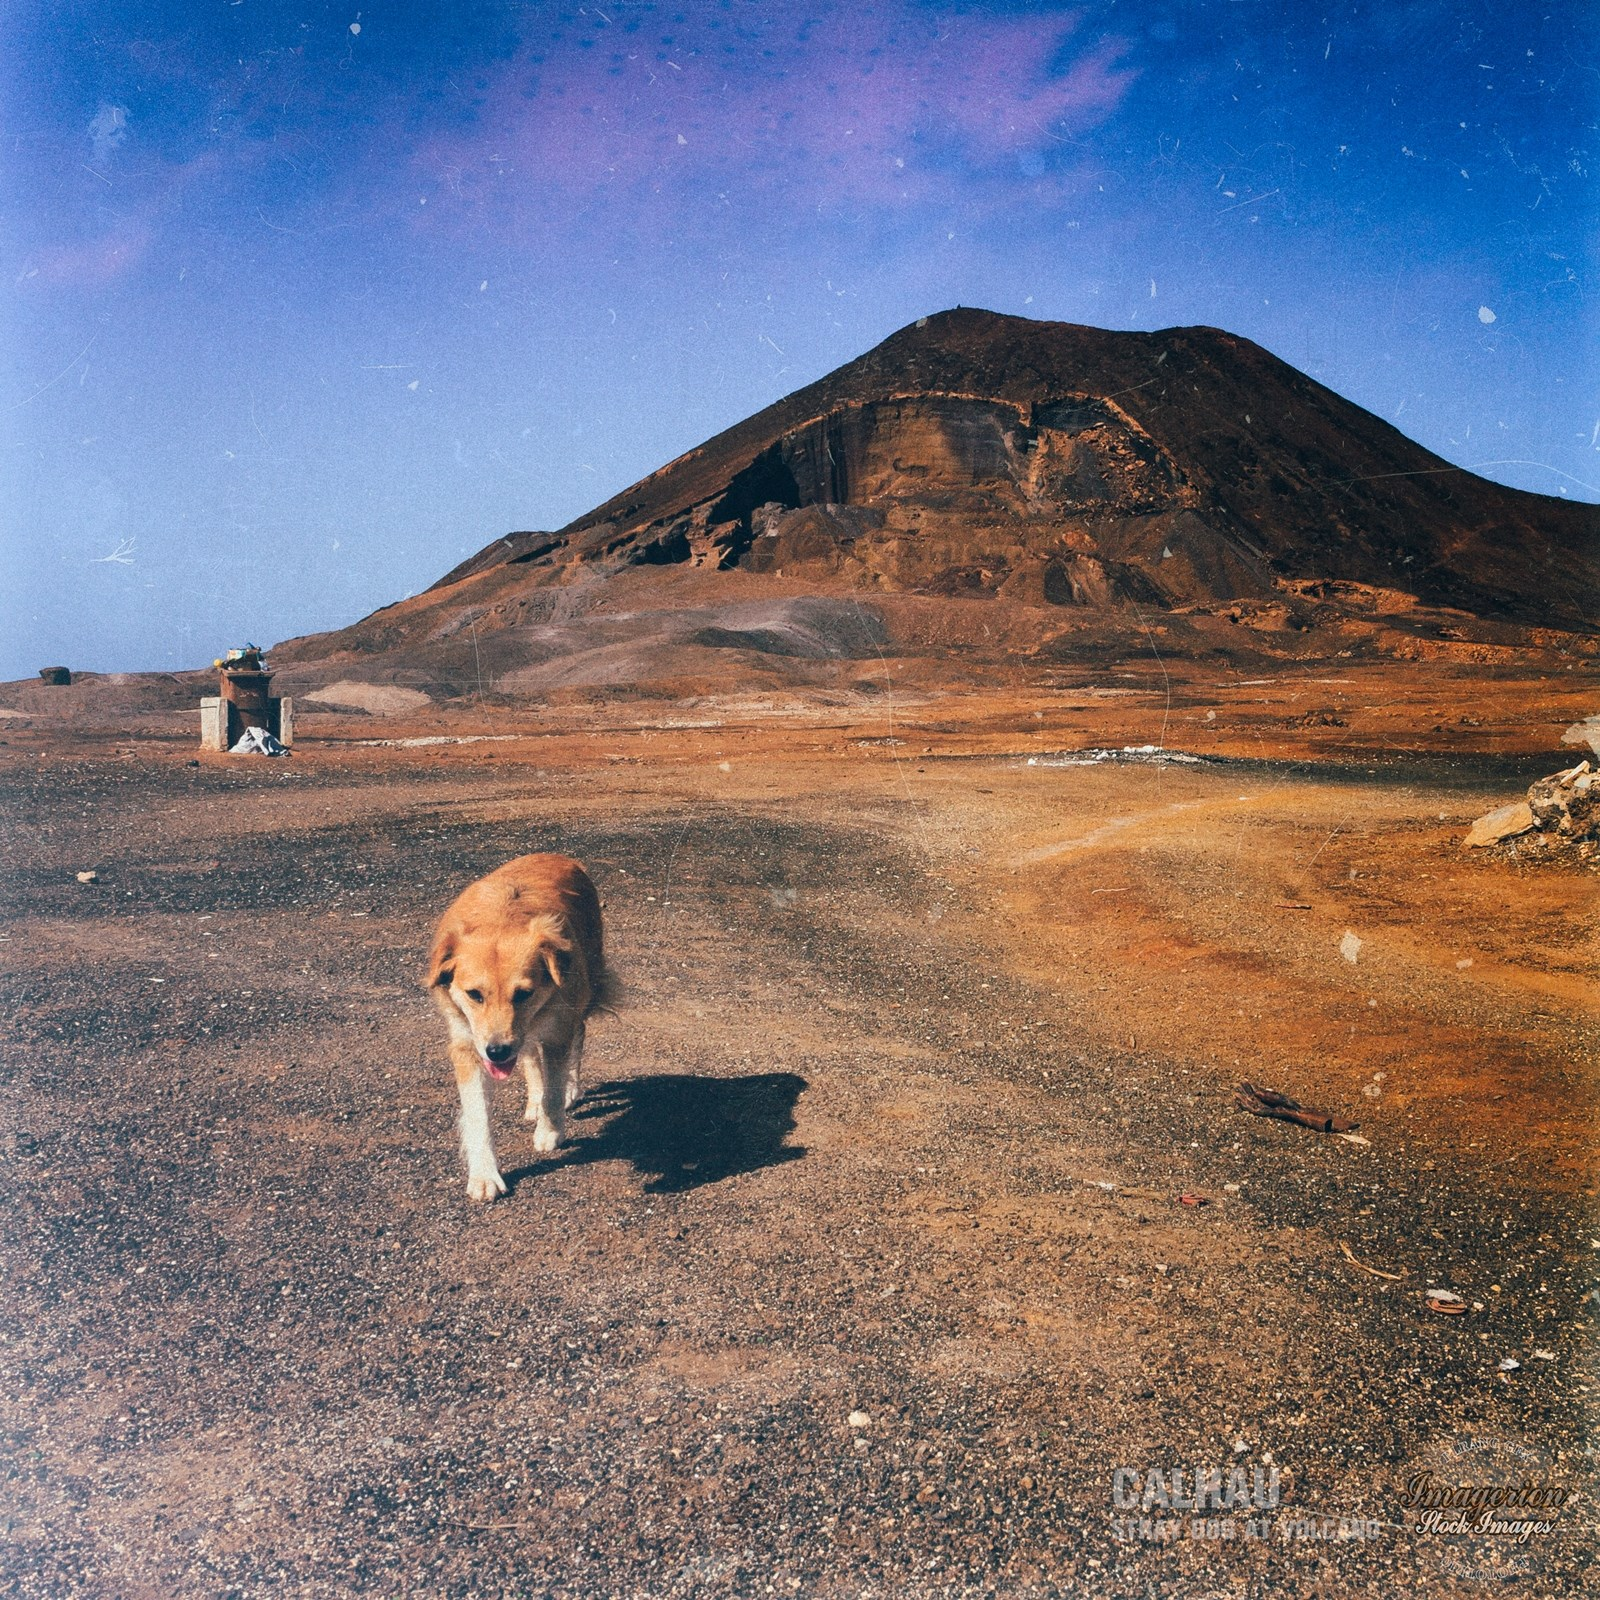 Stray dog walking near the volcano